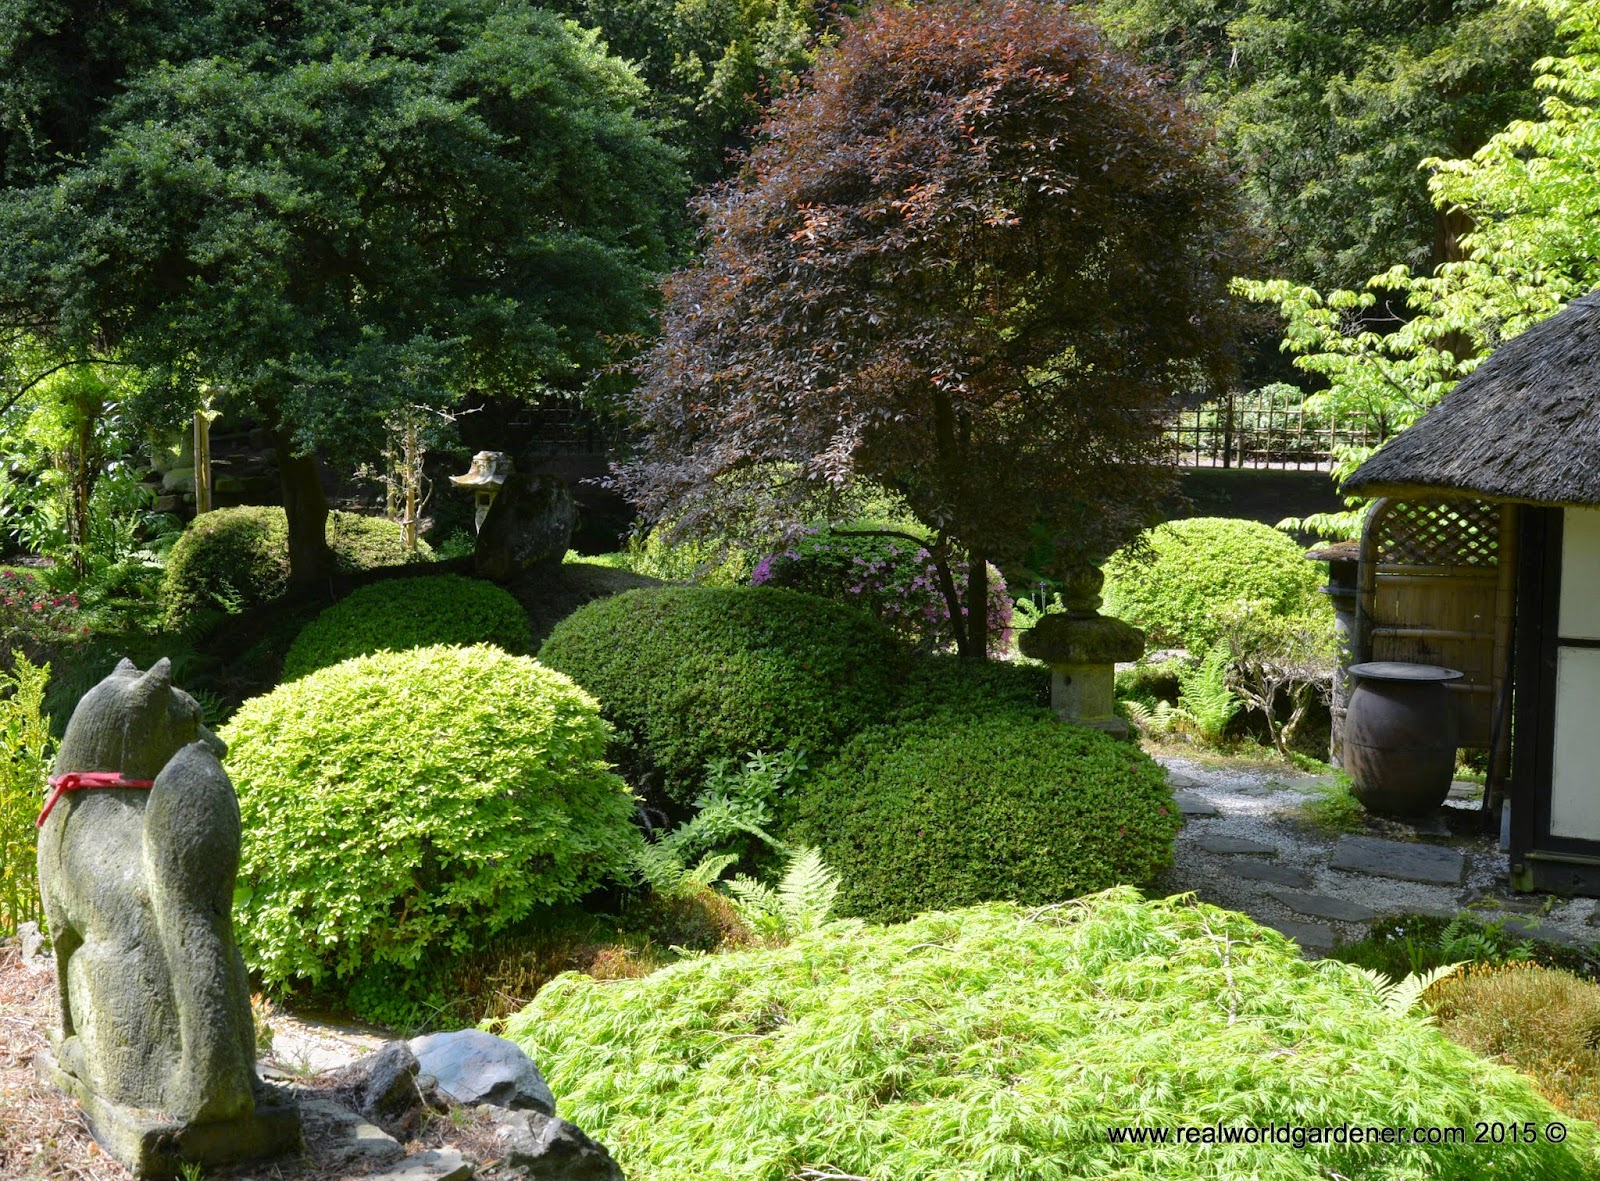 Real world gardener oriental themes in design elements for Garden design podcast